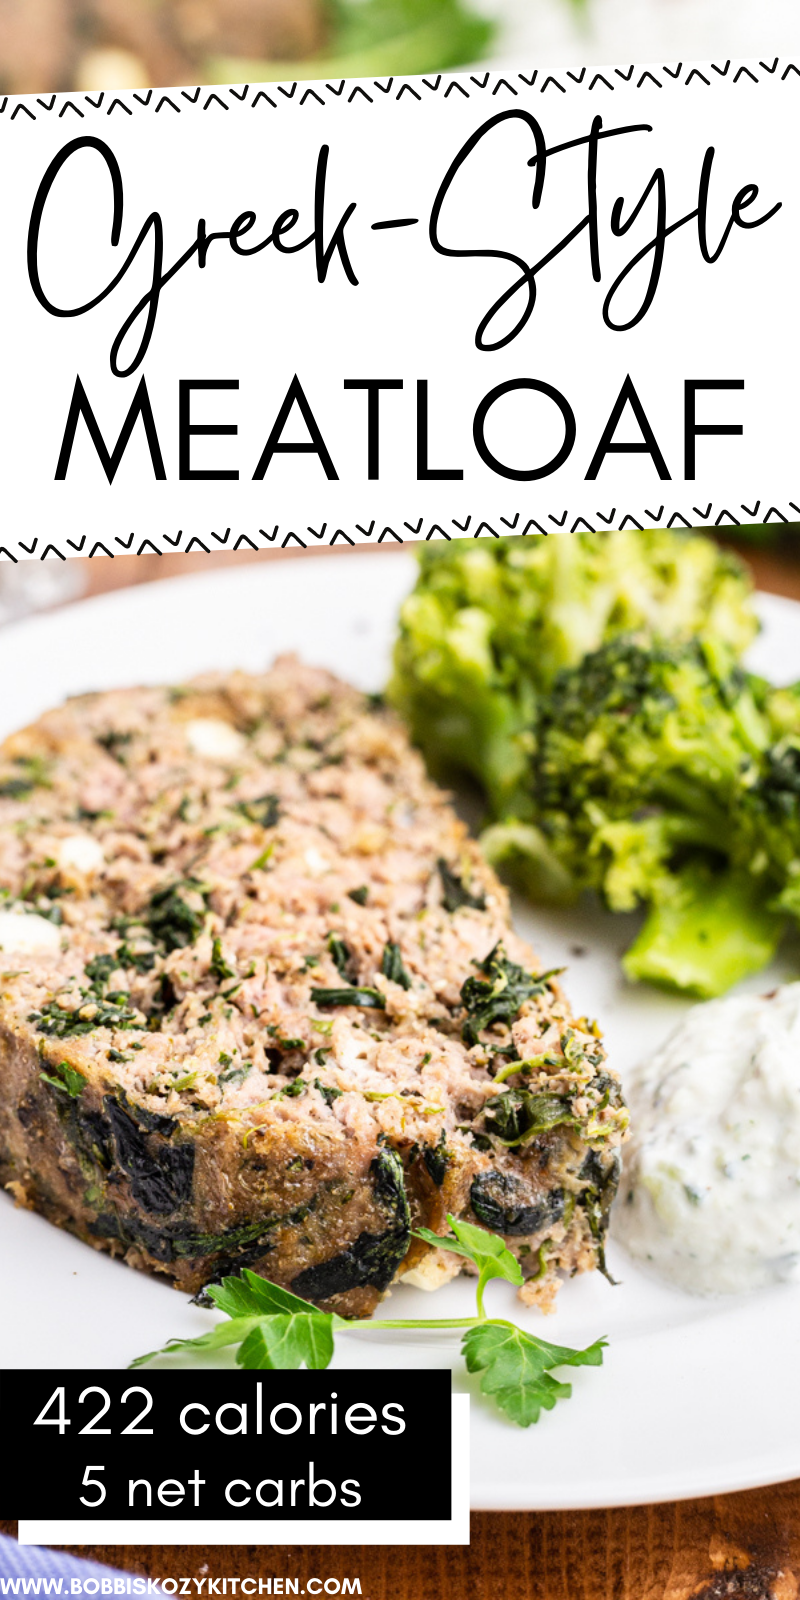 Keto Greek Style Meatloaf - This keto meatloaf recipe takes the classic and gives it a Greek twist. Full of spinach and fresh herbs and studded with feta cheese, it is moist and tender, and full of flavor!  #keto #lowcarb #glutenfree #grainfree #lamb #Greek #meatloaf #recipe